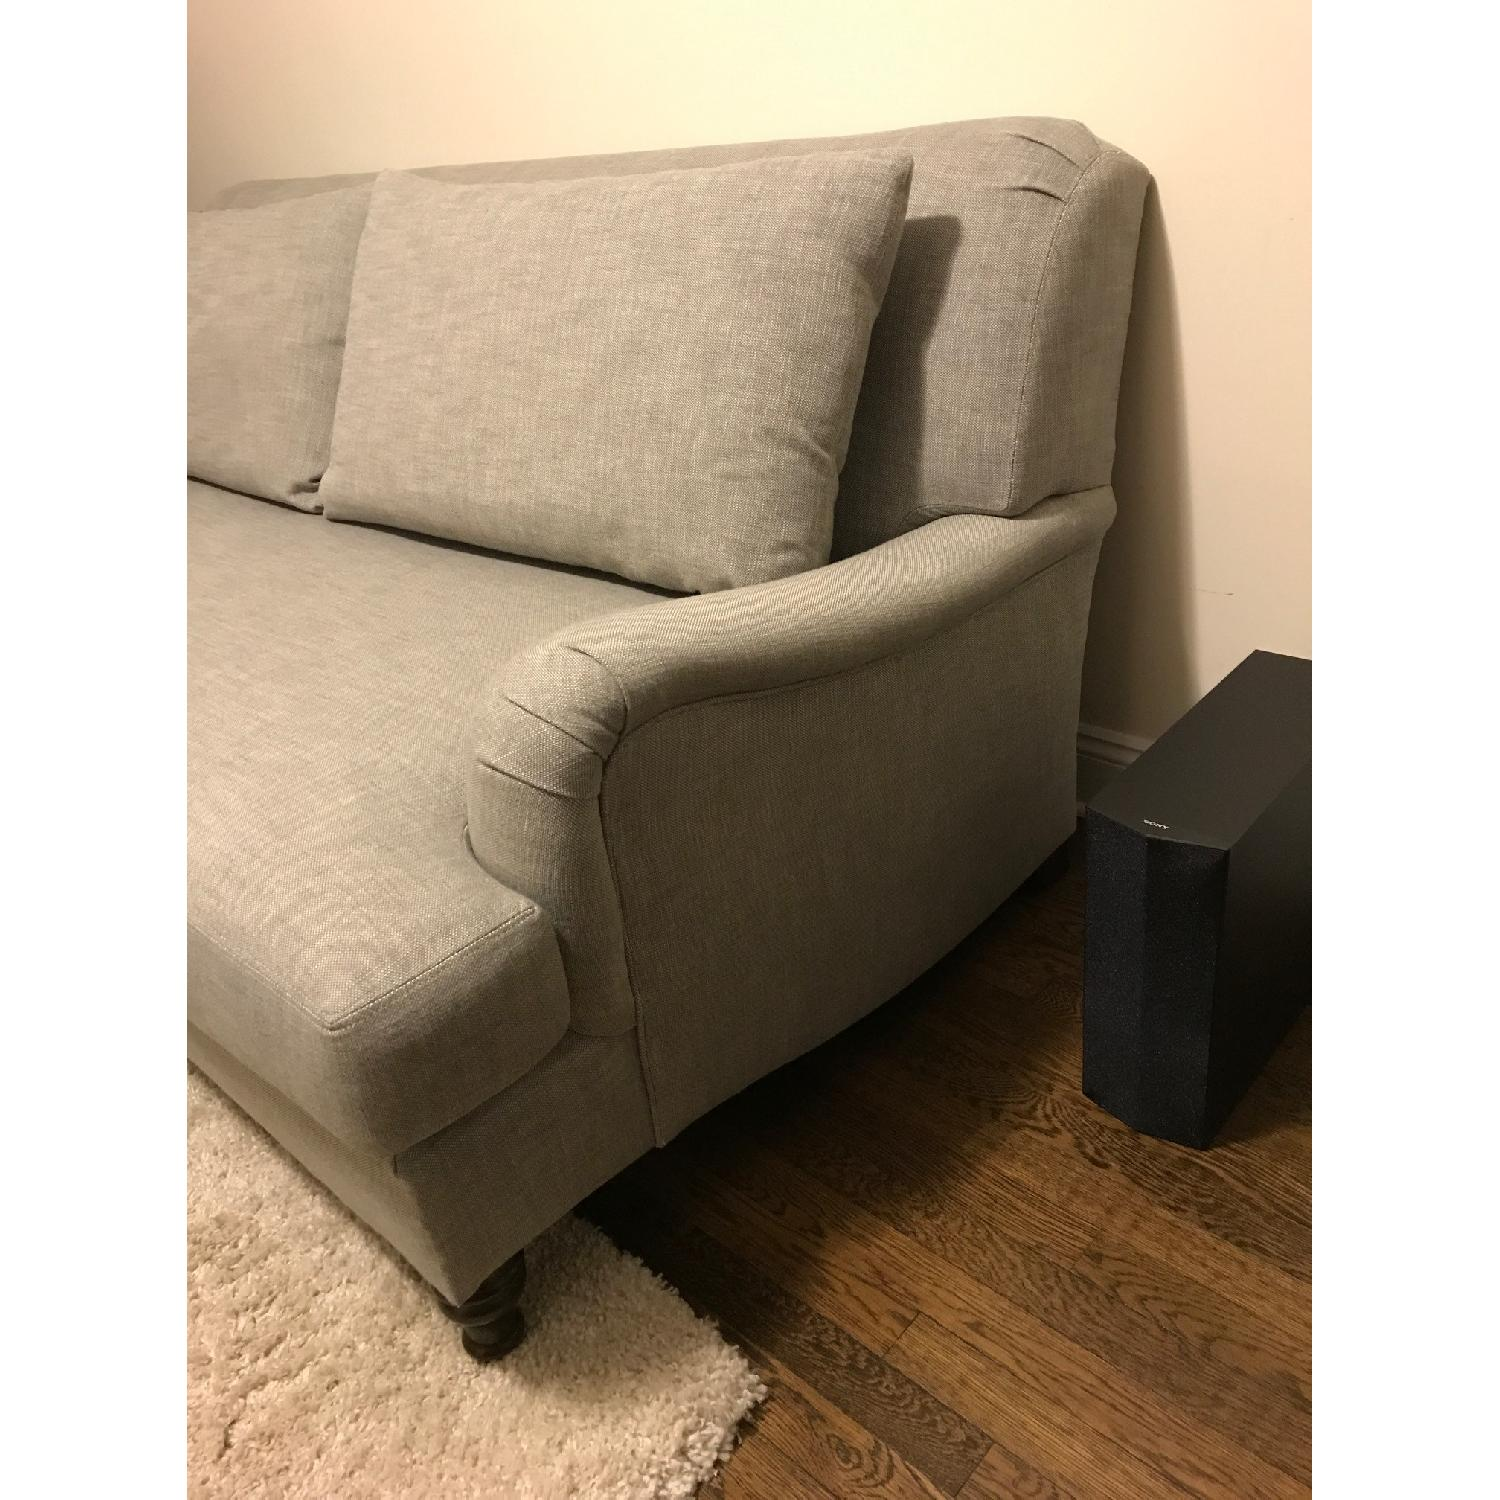 Pottery Barn Carlisle Upholstered Sofa-1